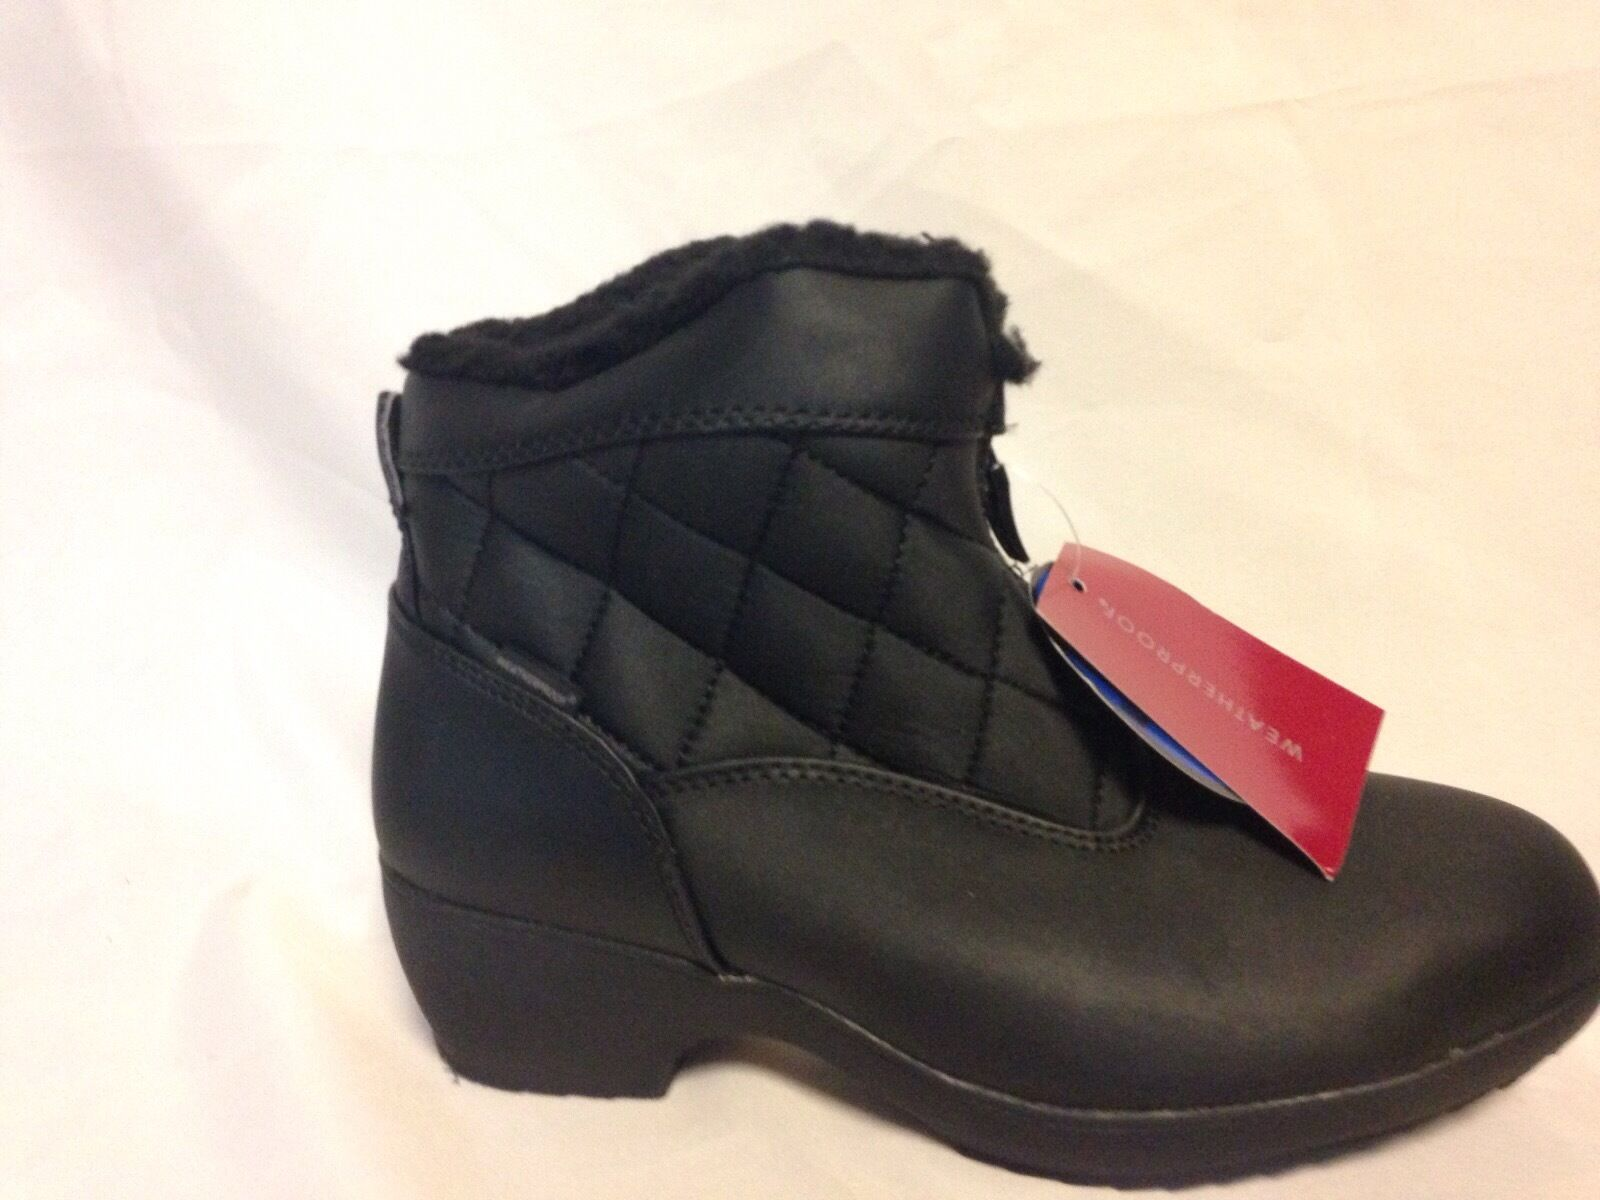 Weatherproof Lori Zip Front Cold Weathe Boot 8 M M M Nero  New w/out Box bcd847